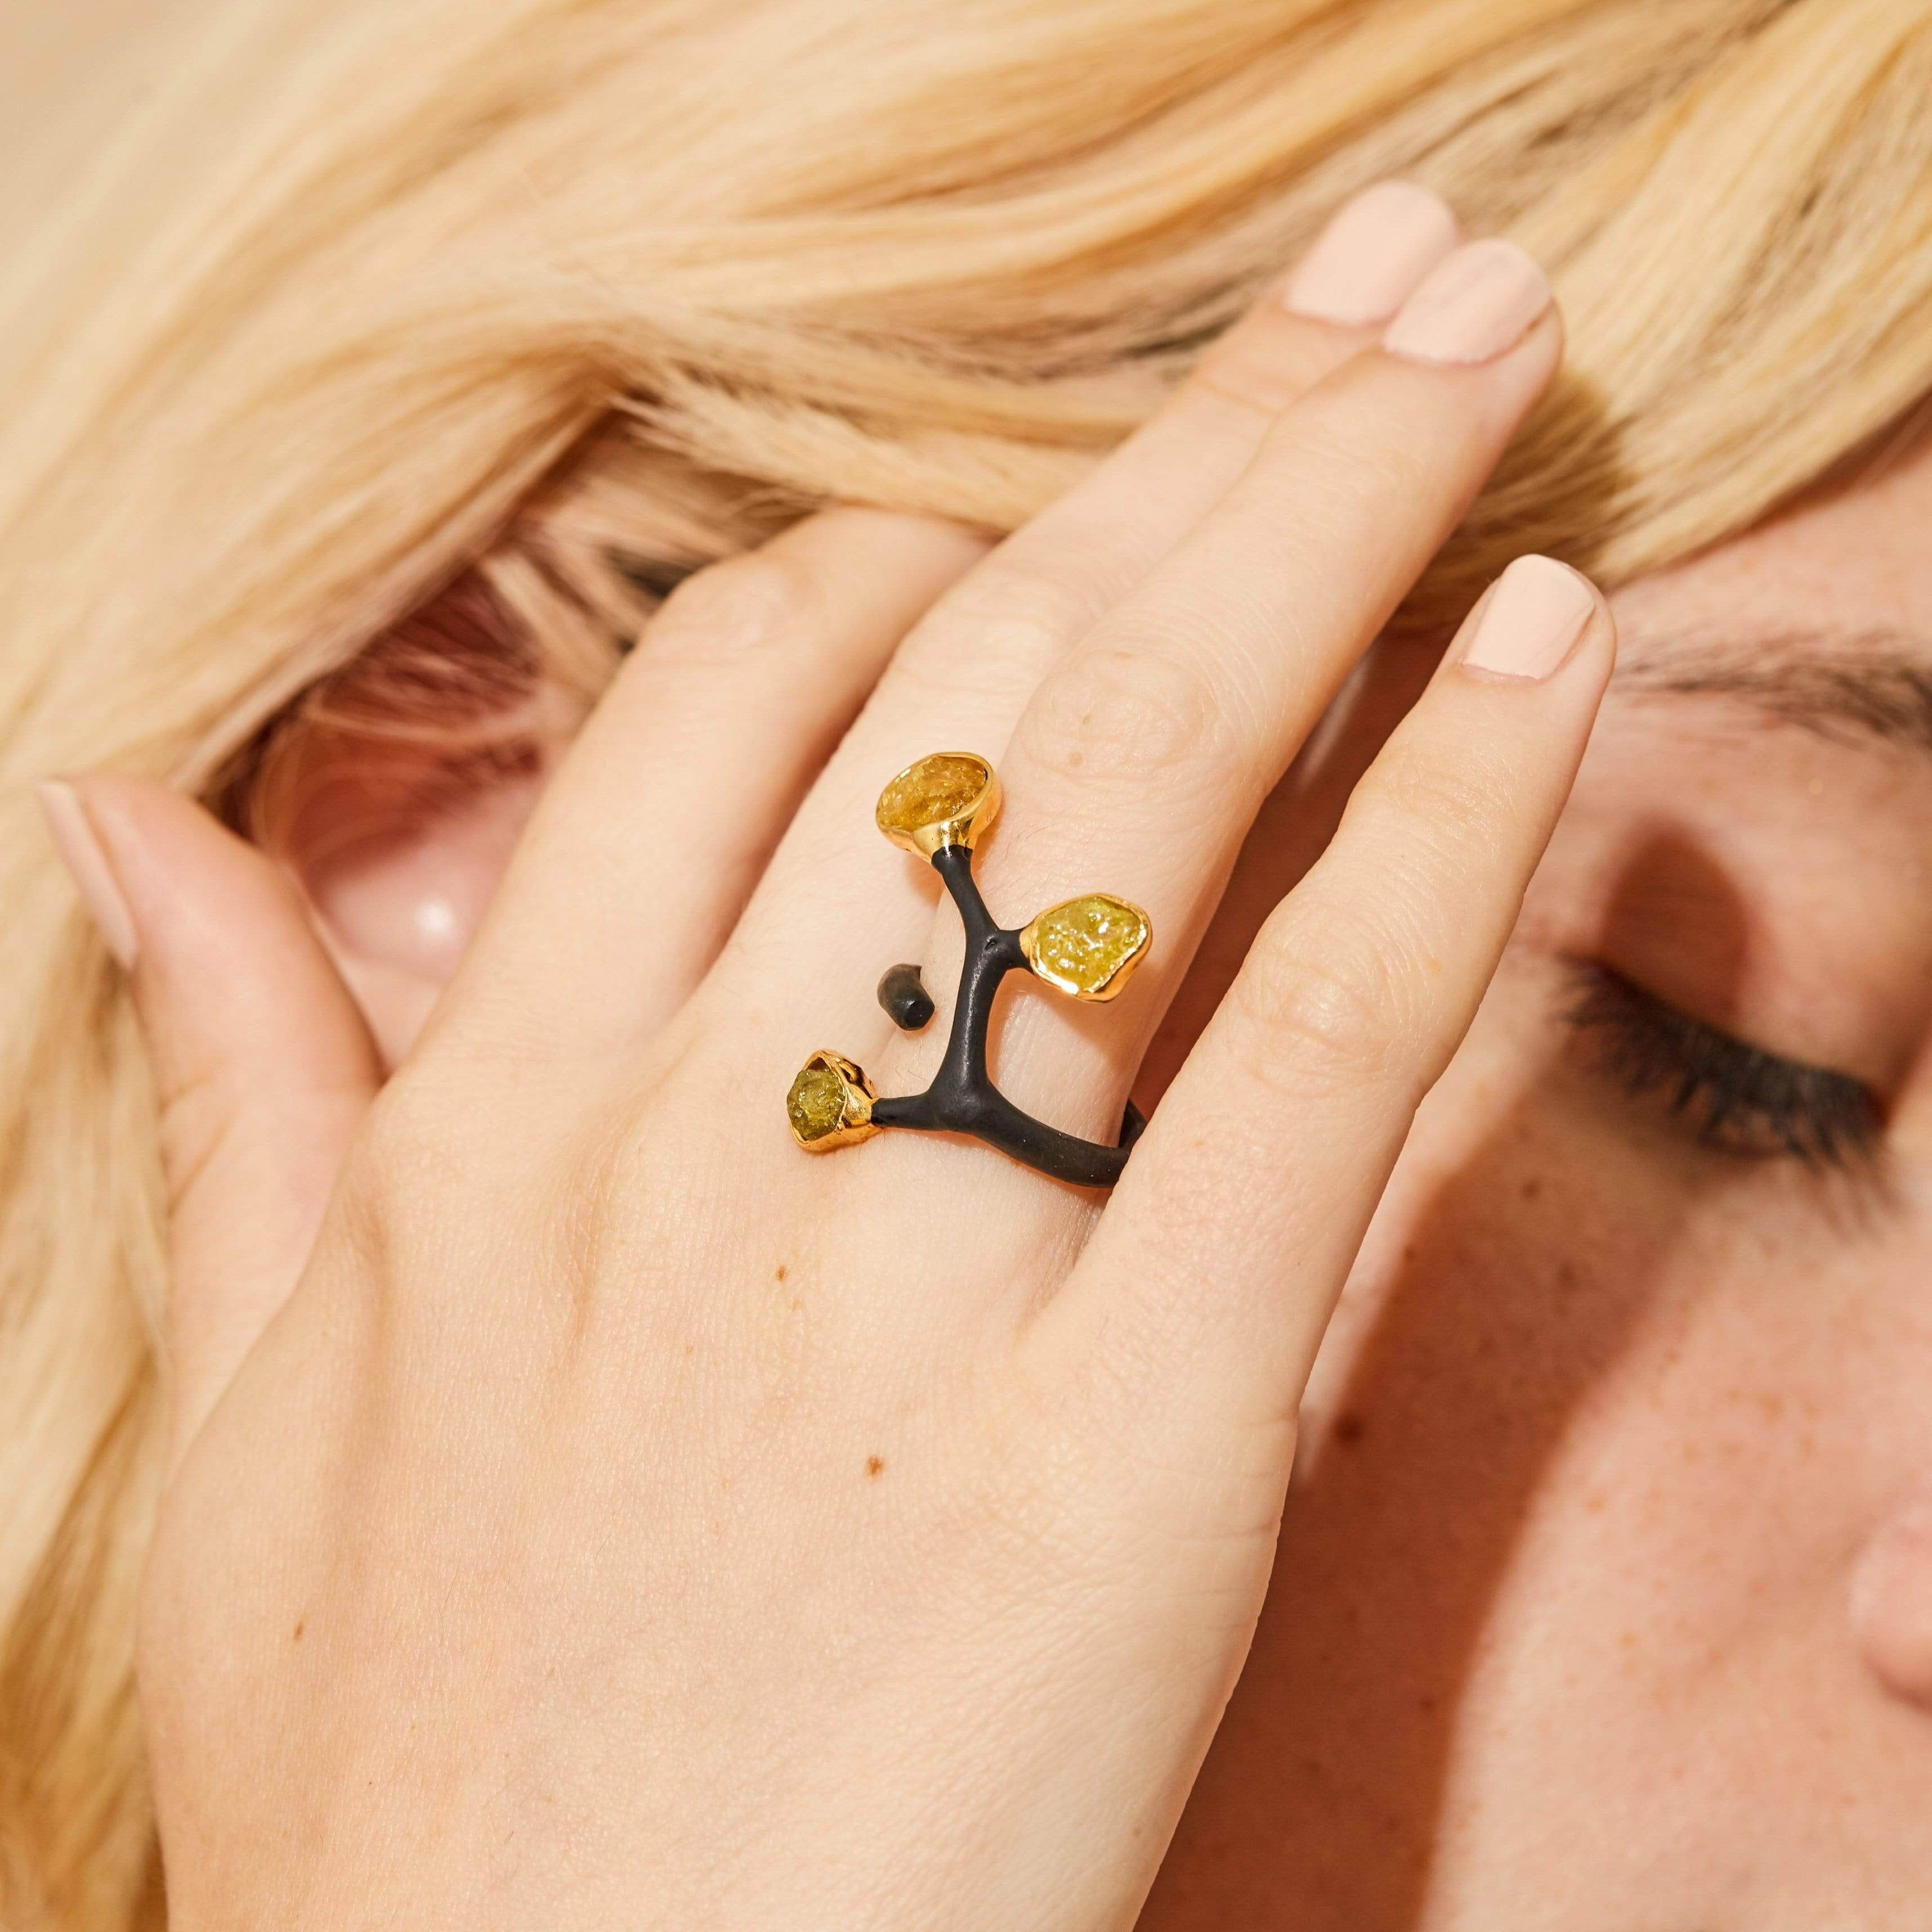 Radella Amber Ring, Anthracite, black, Chrysoberyl, Gold, Handmade, spo-disabled, StoneColor:Yellow, Style:Fantasy, Type:BlackAnthracite, Type:StoneCandyOut Ring